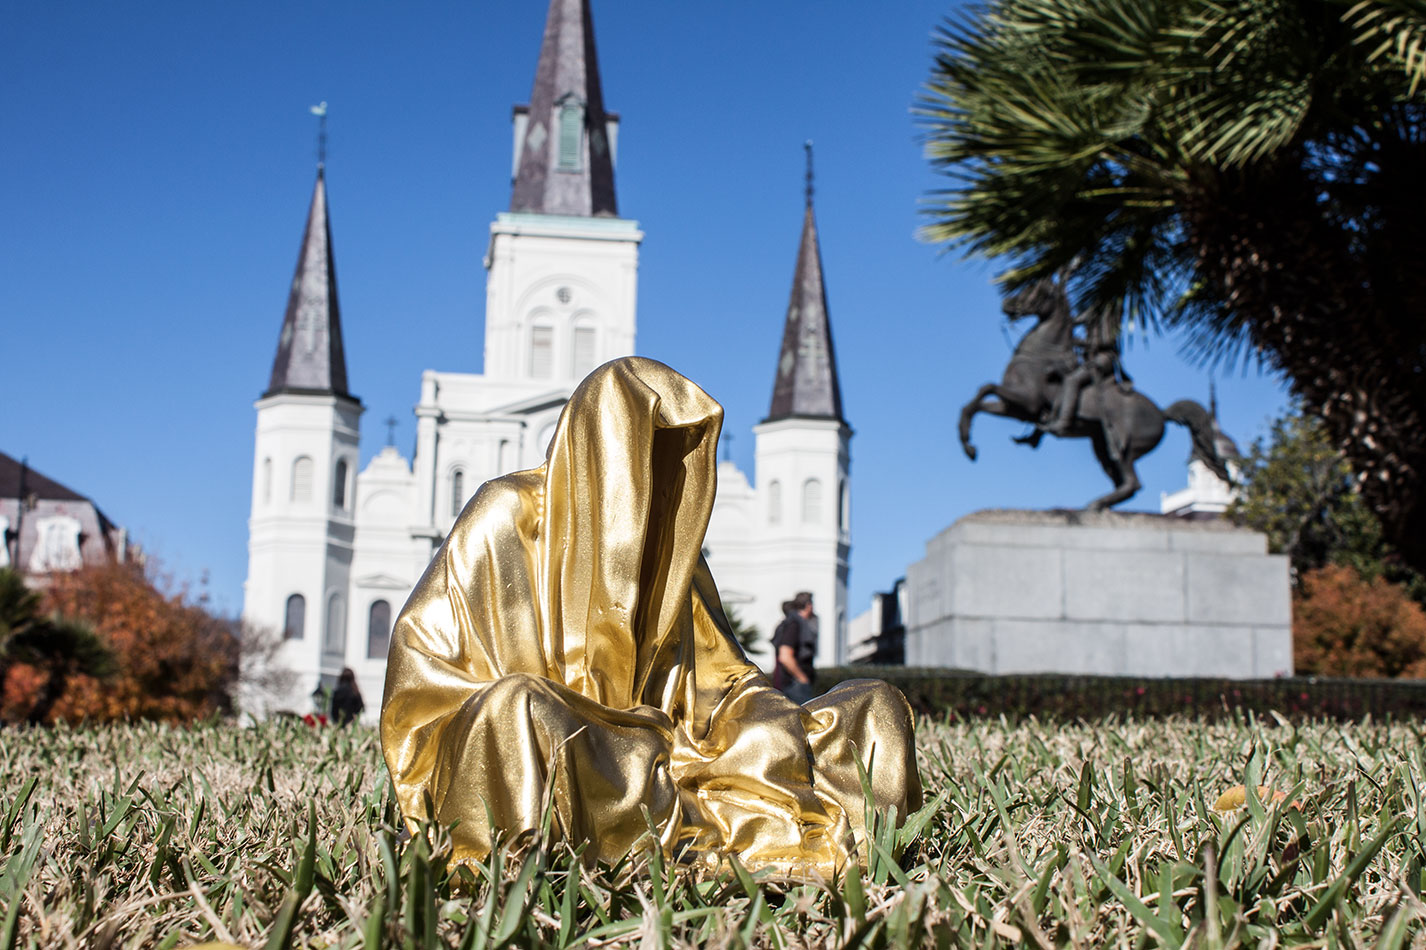 public-art-show-New-Orleans-Louisiana-usa-guardians-of-time-manfred-kili-kielnhofer-contemporary-fine-art-modern-arts-design-antiques-sculpture-5350